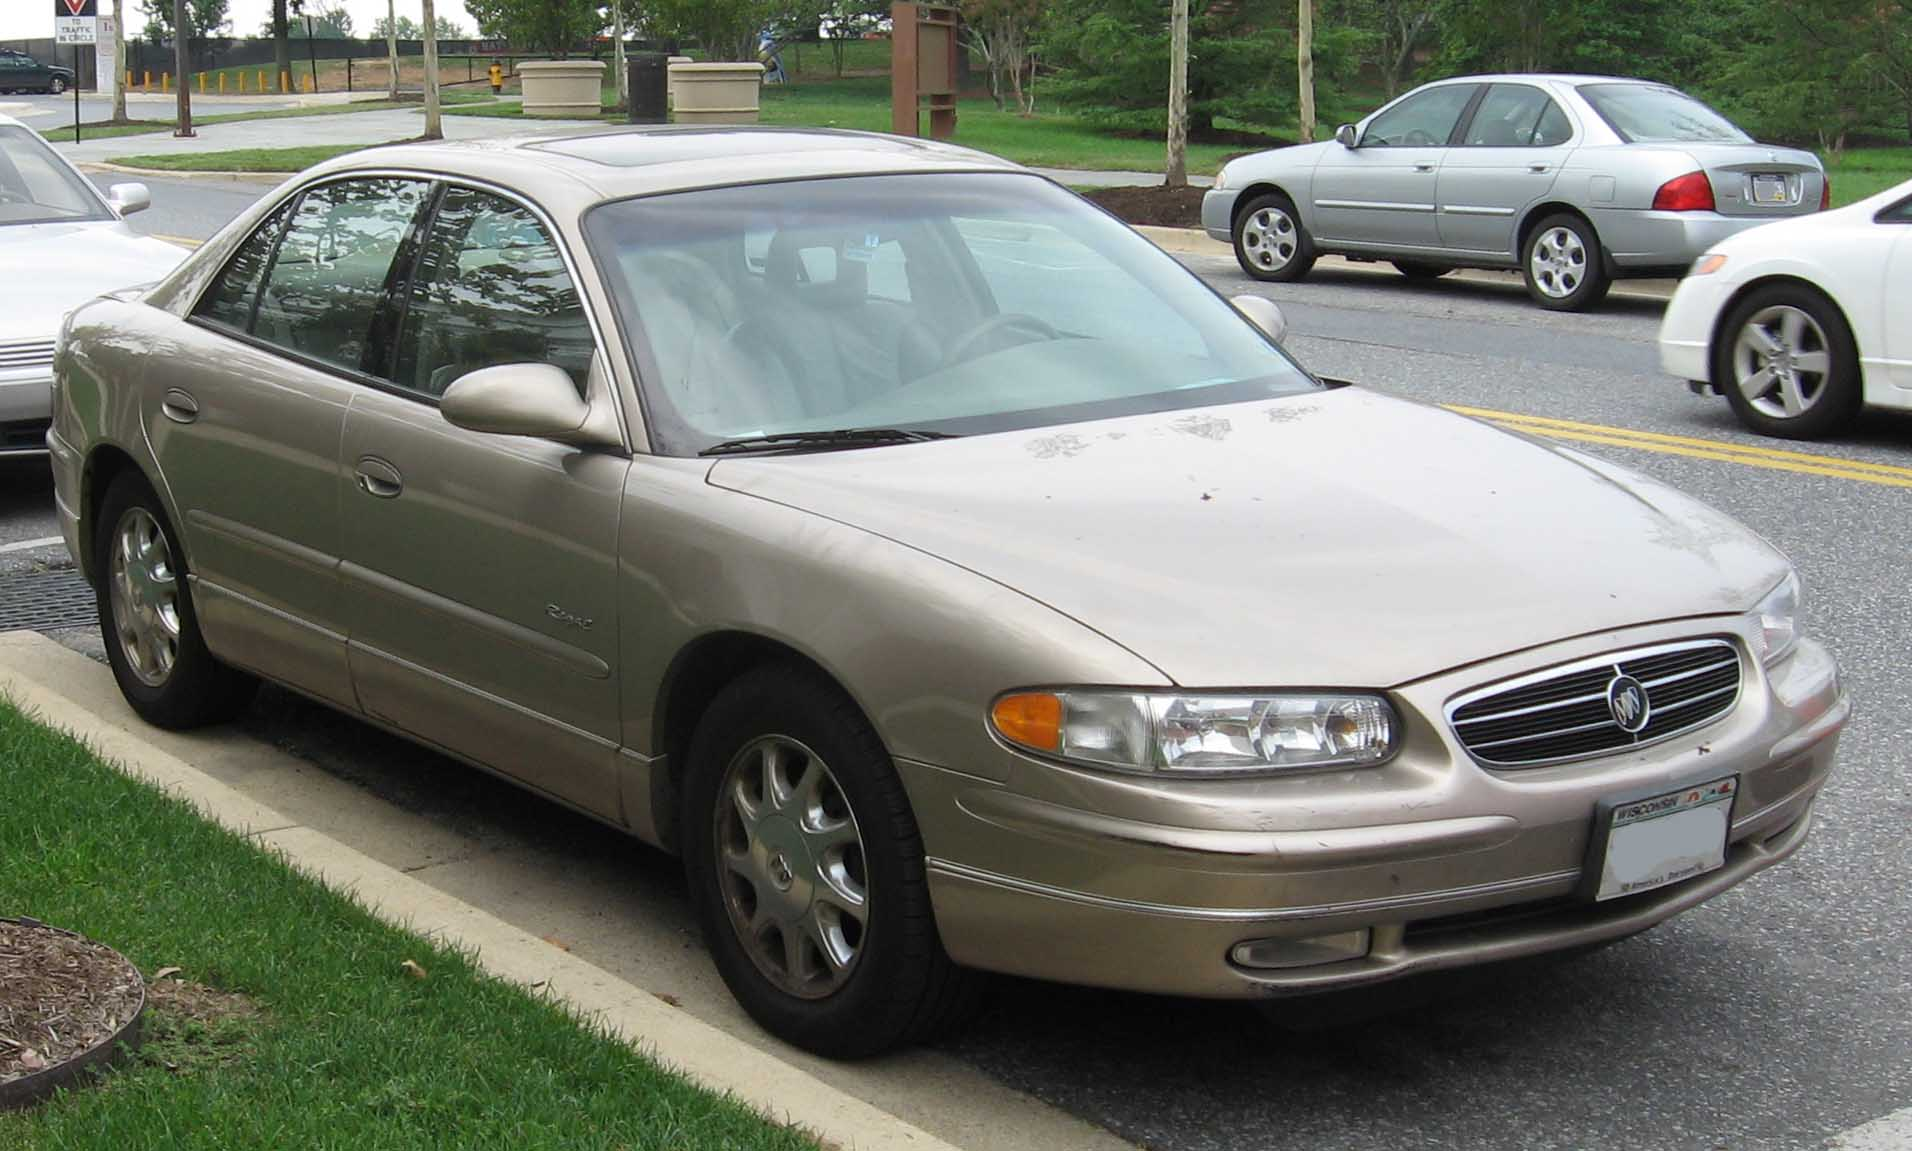 File:97-04 Buick Regal.jpg - Wikimedia Commons